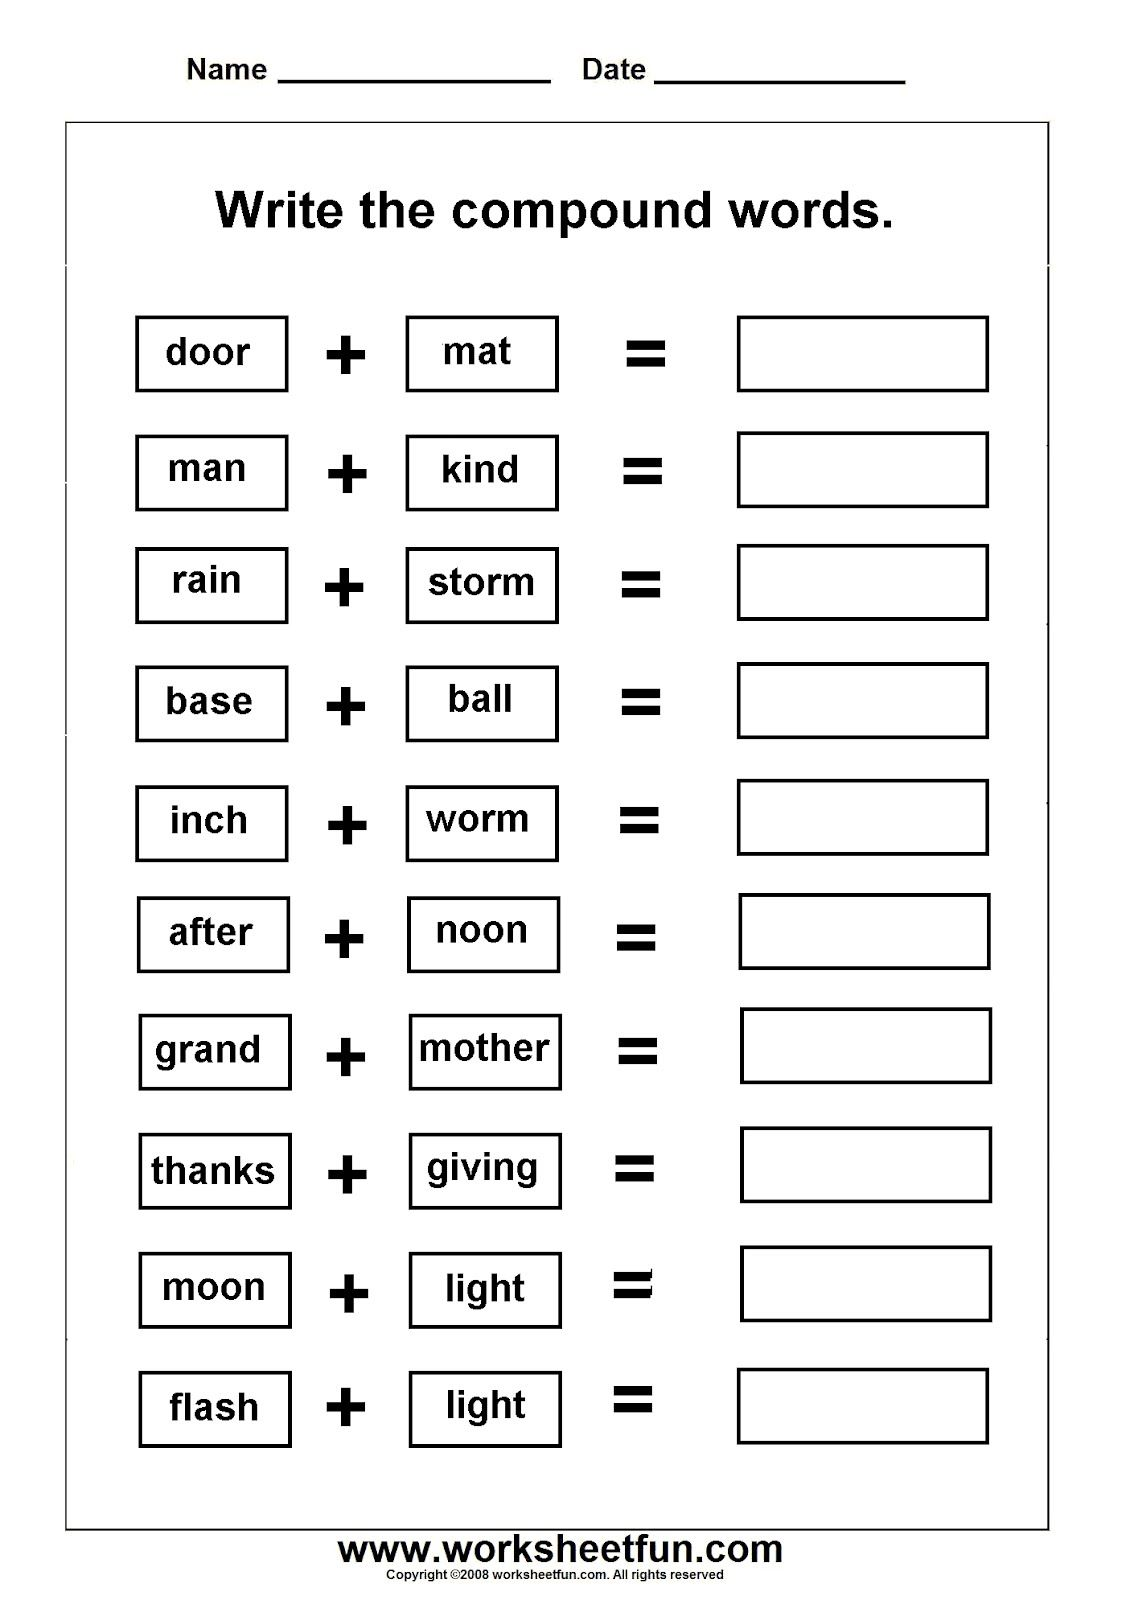 Worksheet Compound Words For Preschool worksheets on compound words with pictures ela activities words